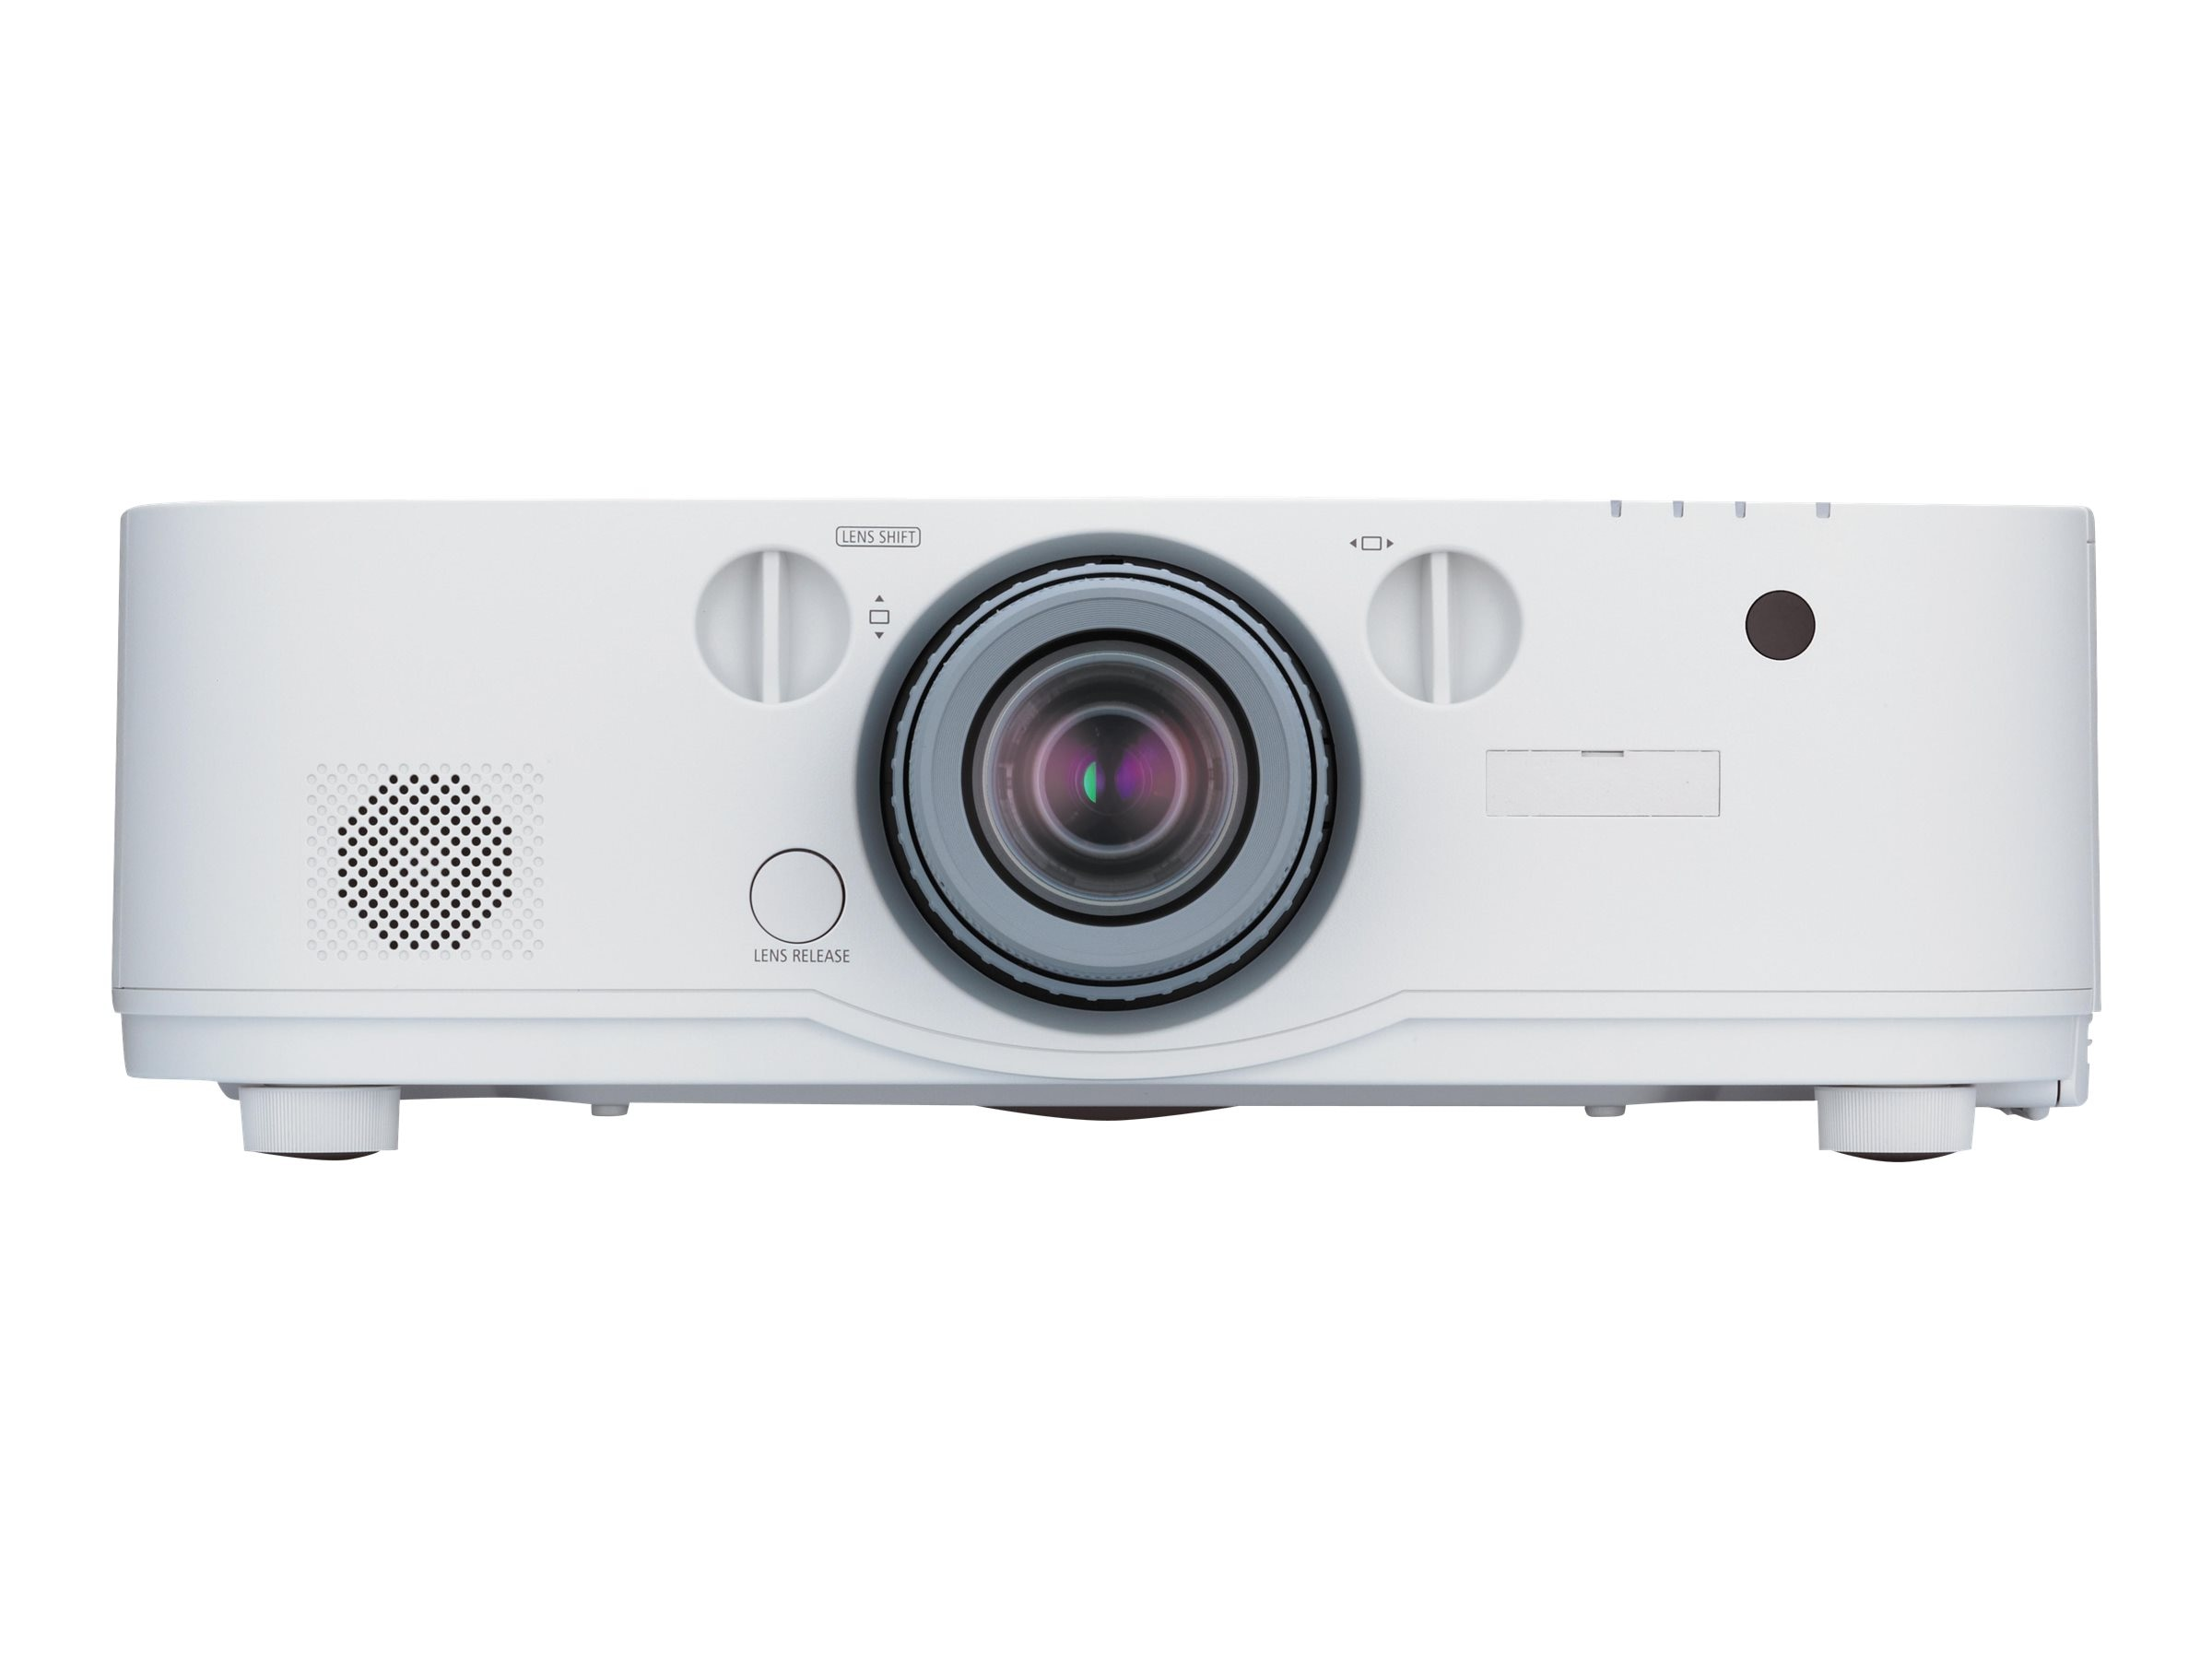 NEC PA672W WXGA LCD Projector, 6700 Lumens, White with 1.5-3.0:1 Zoom Lens, NP-PA672W-13ZL